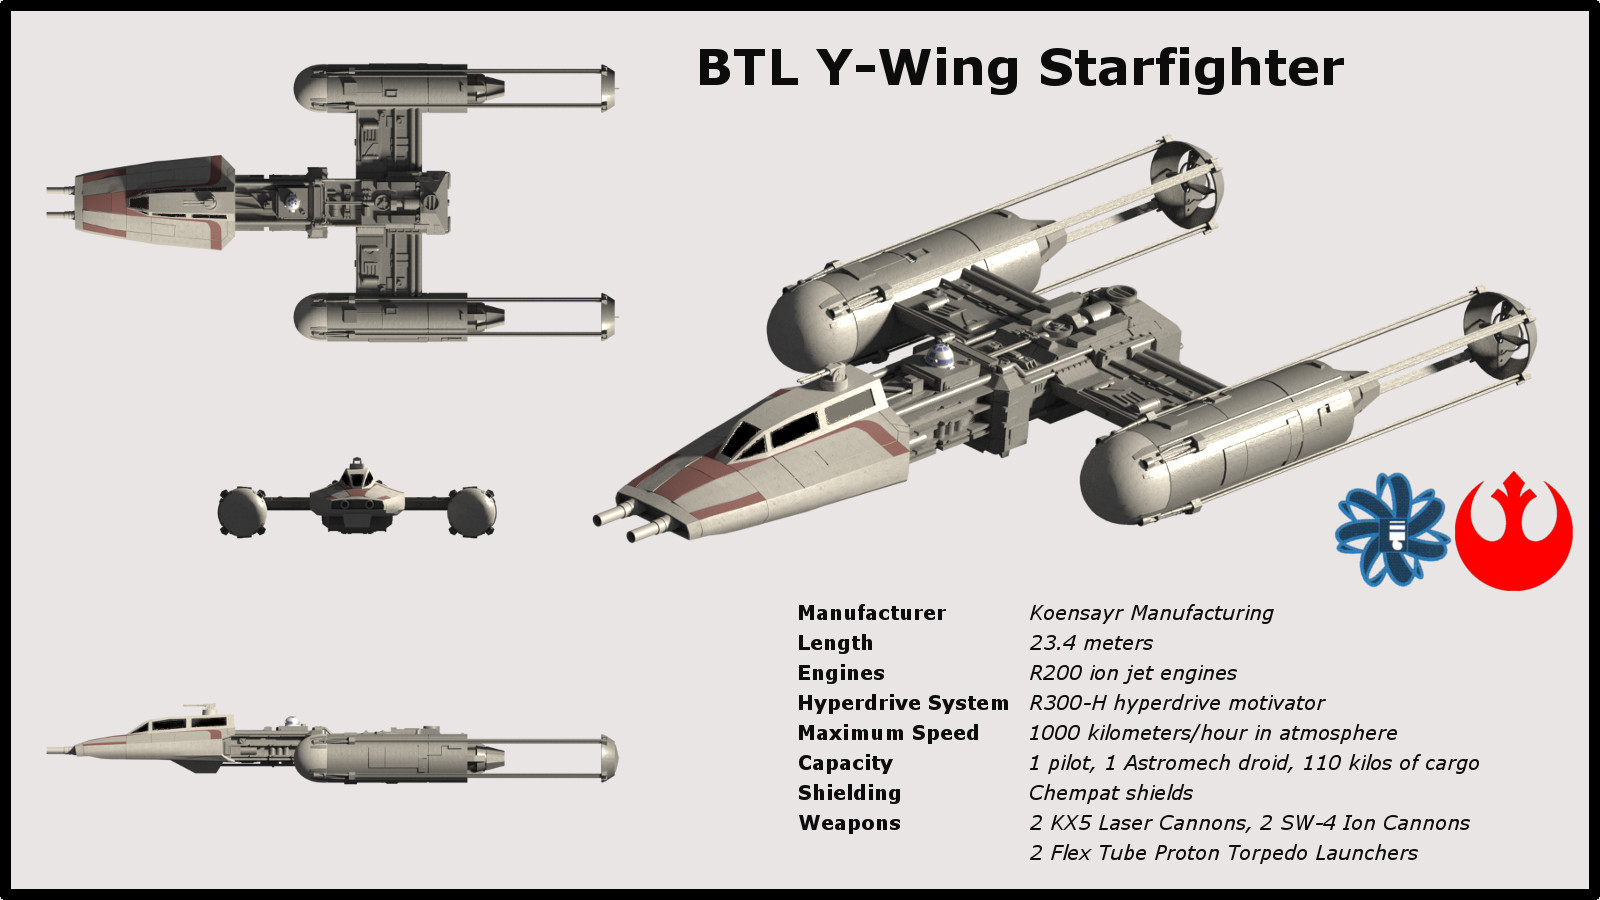 Star Wars Blt Y Wing Starfighter By Silveralv On Deviantart